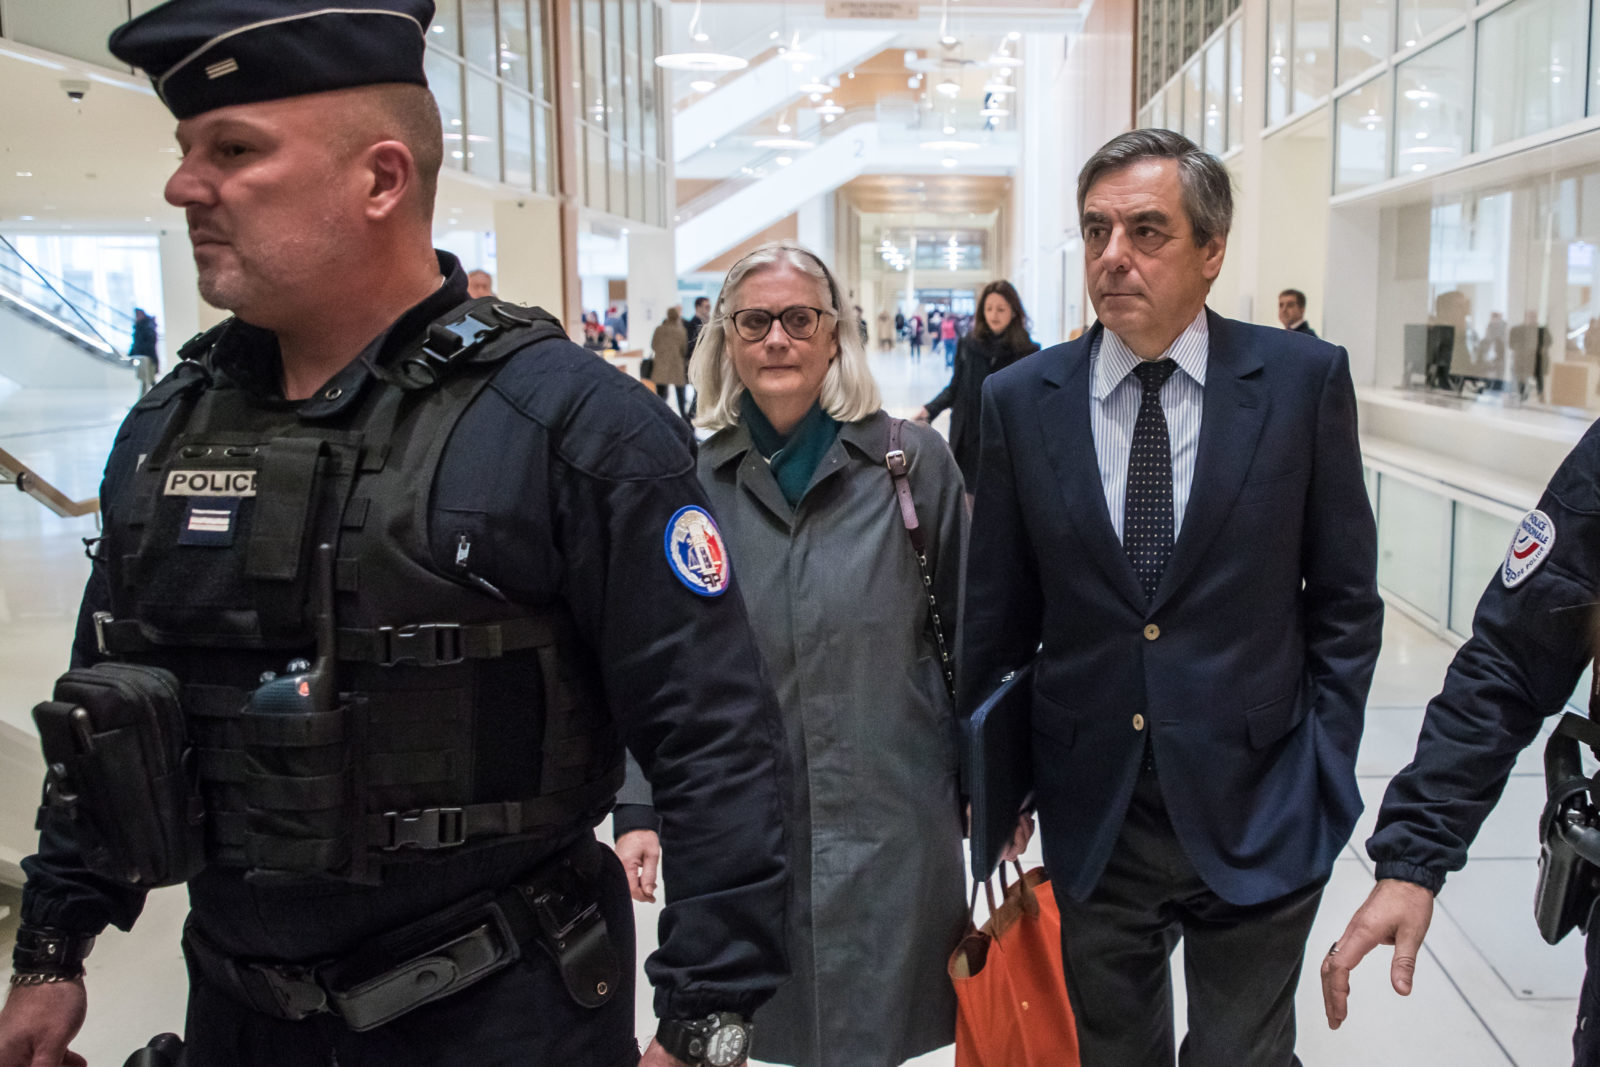 France's former prime minister Francois Fillon and his wife guilty of fraud